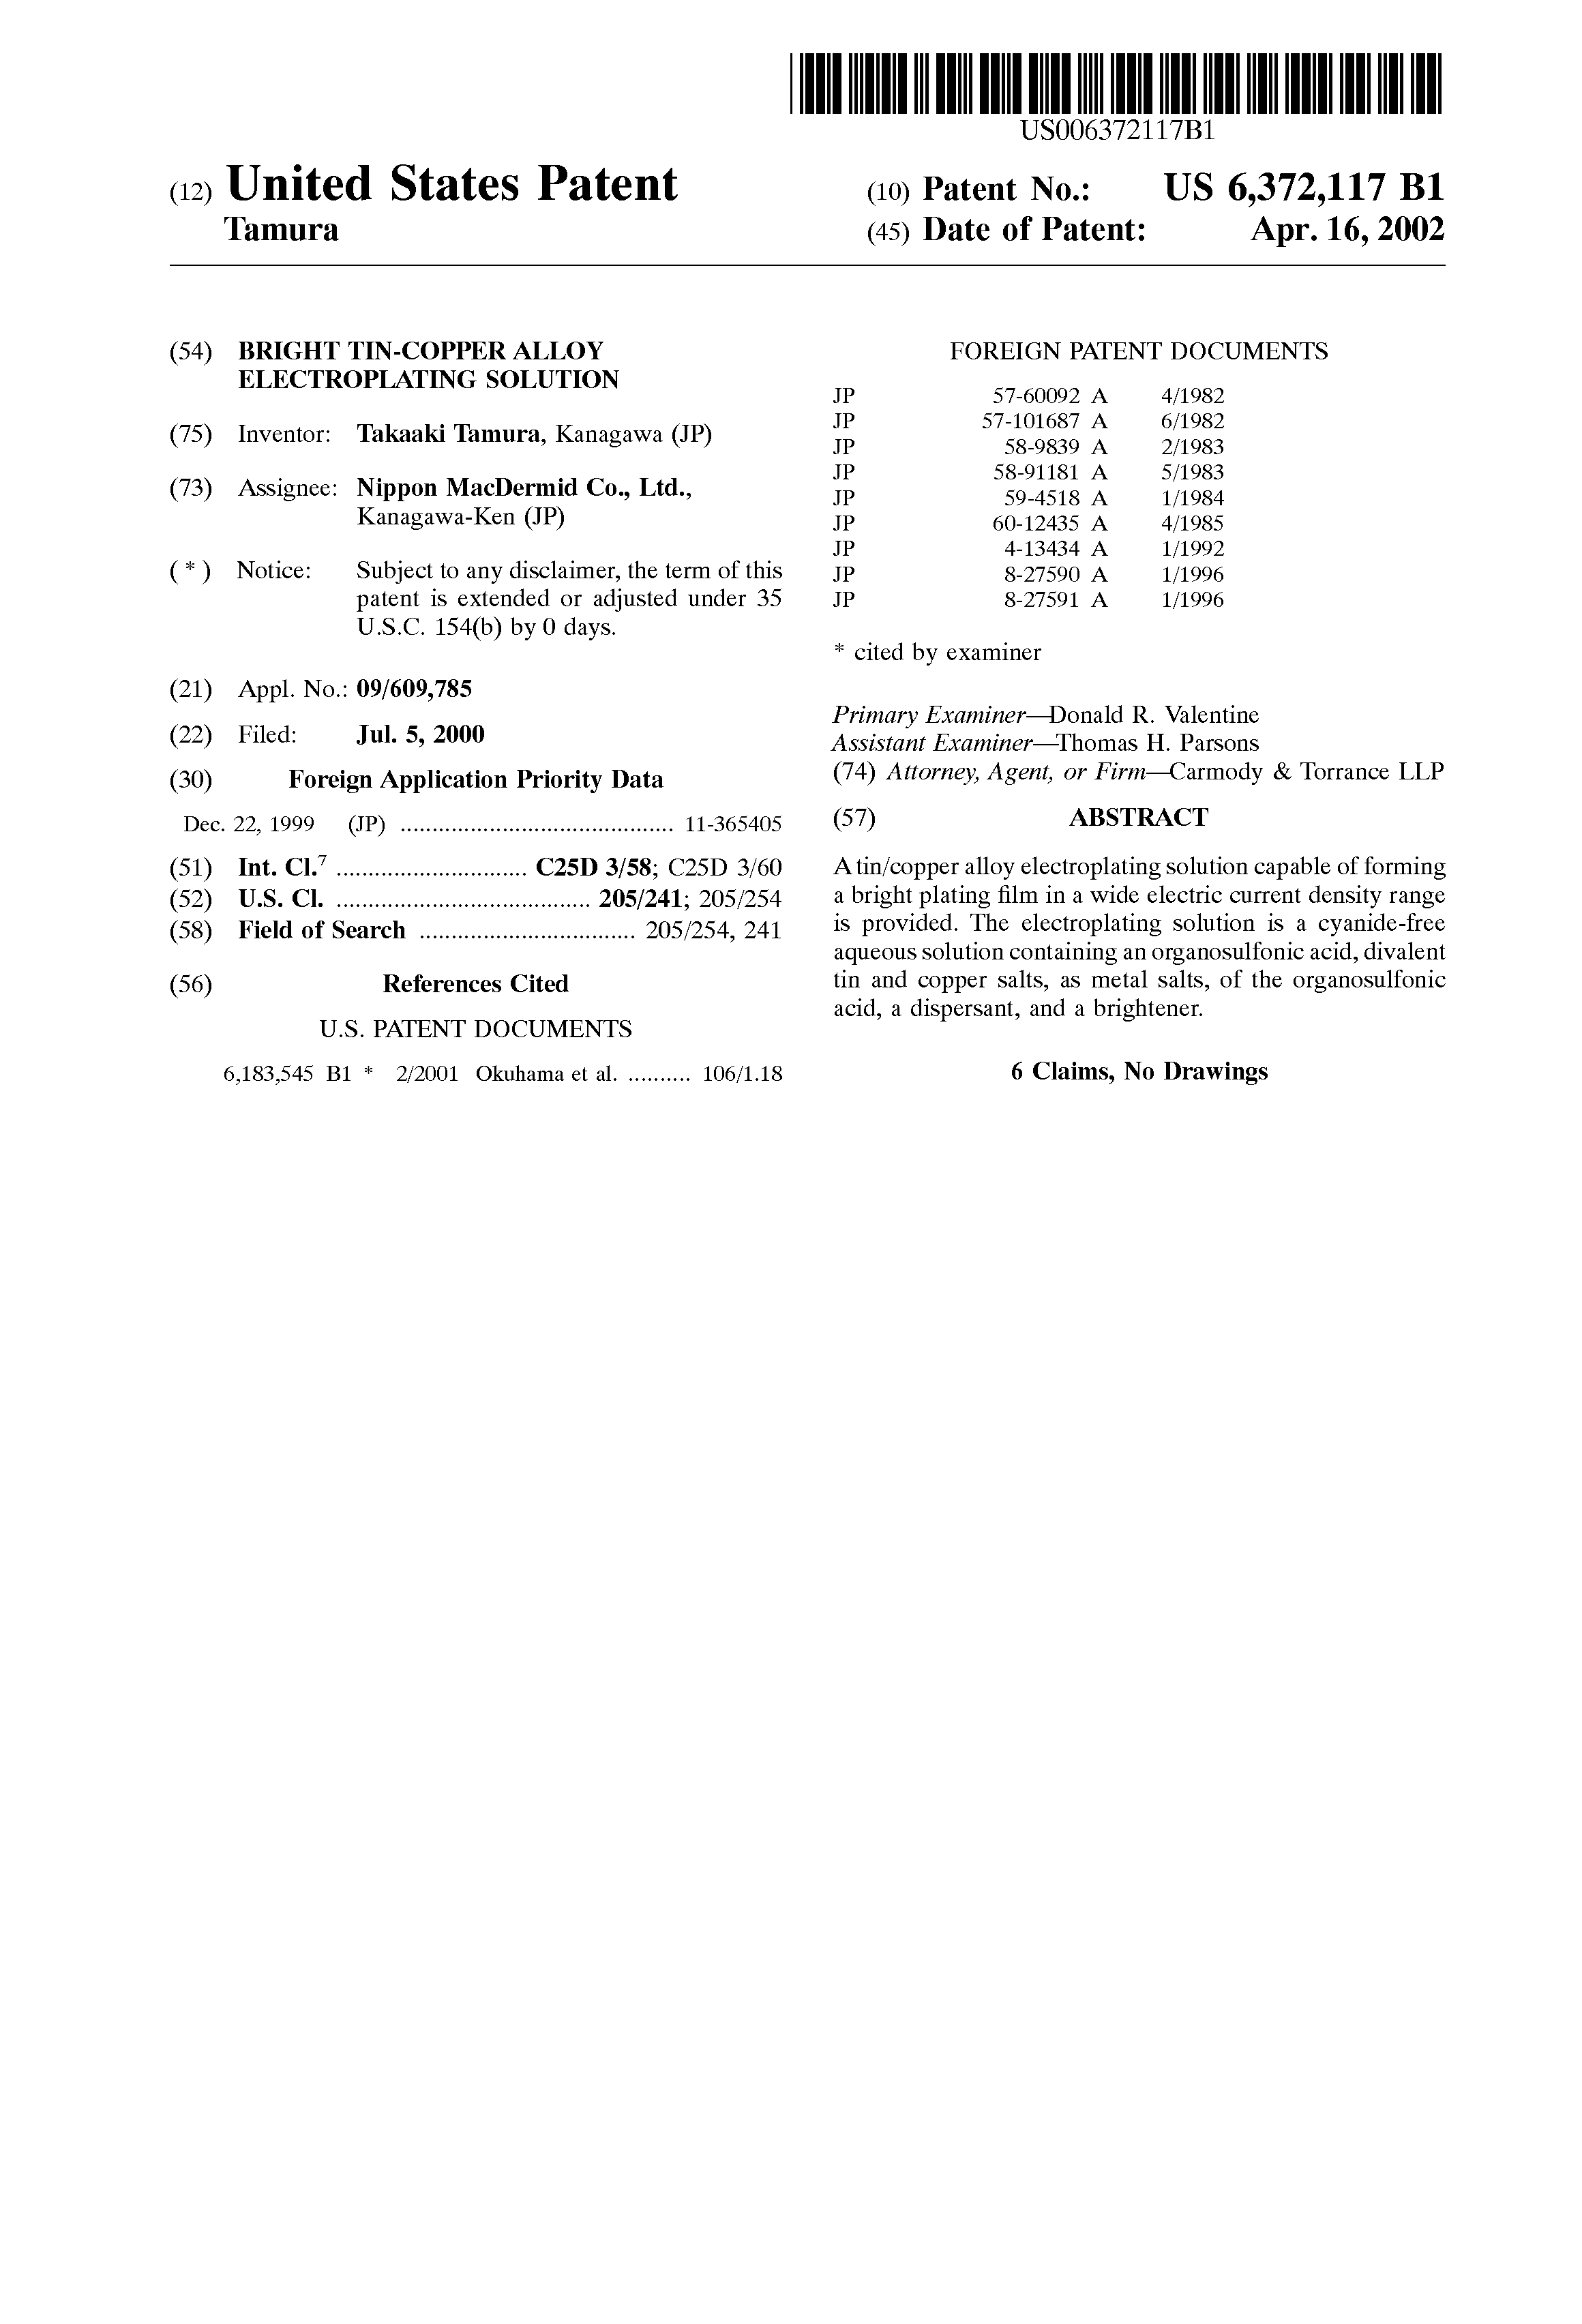 US6372117B1 - Bright tin-copper alloy electroplating